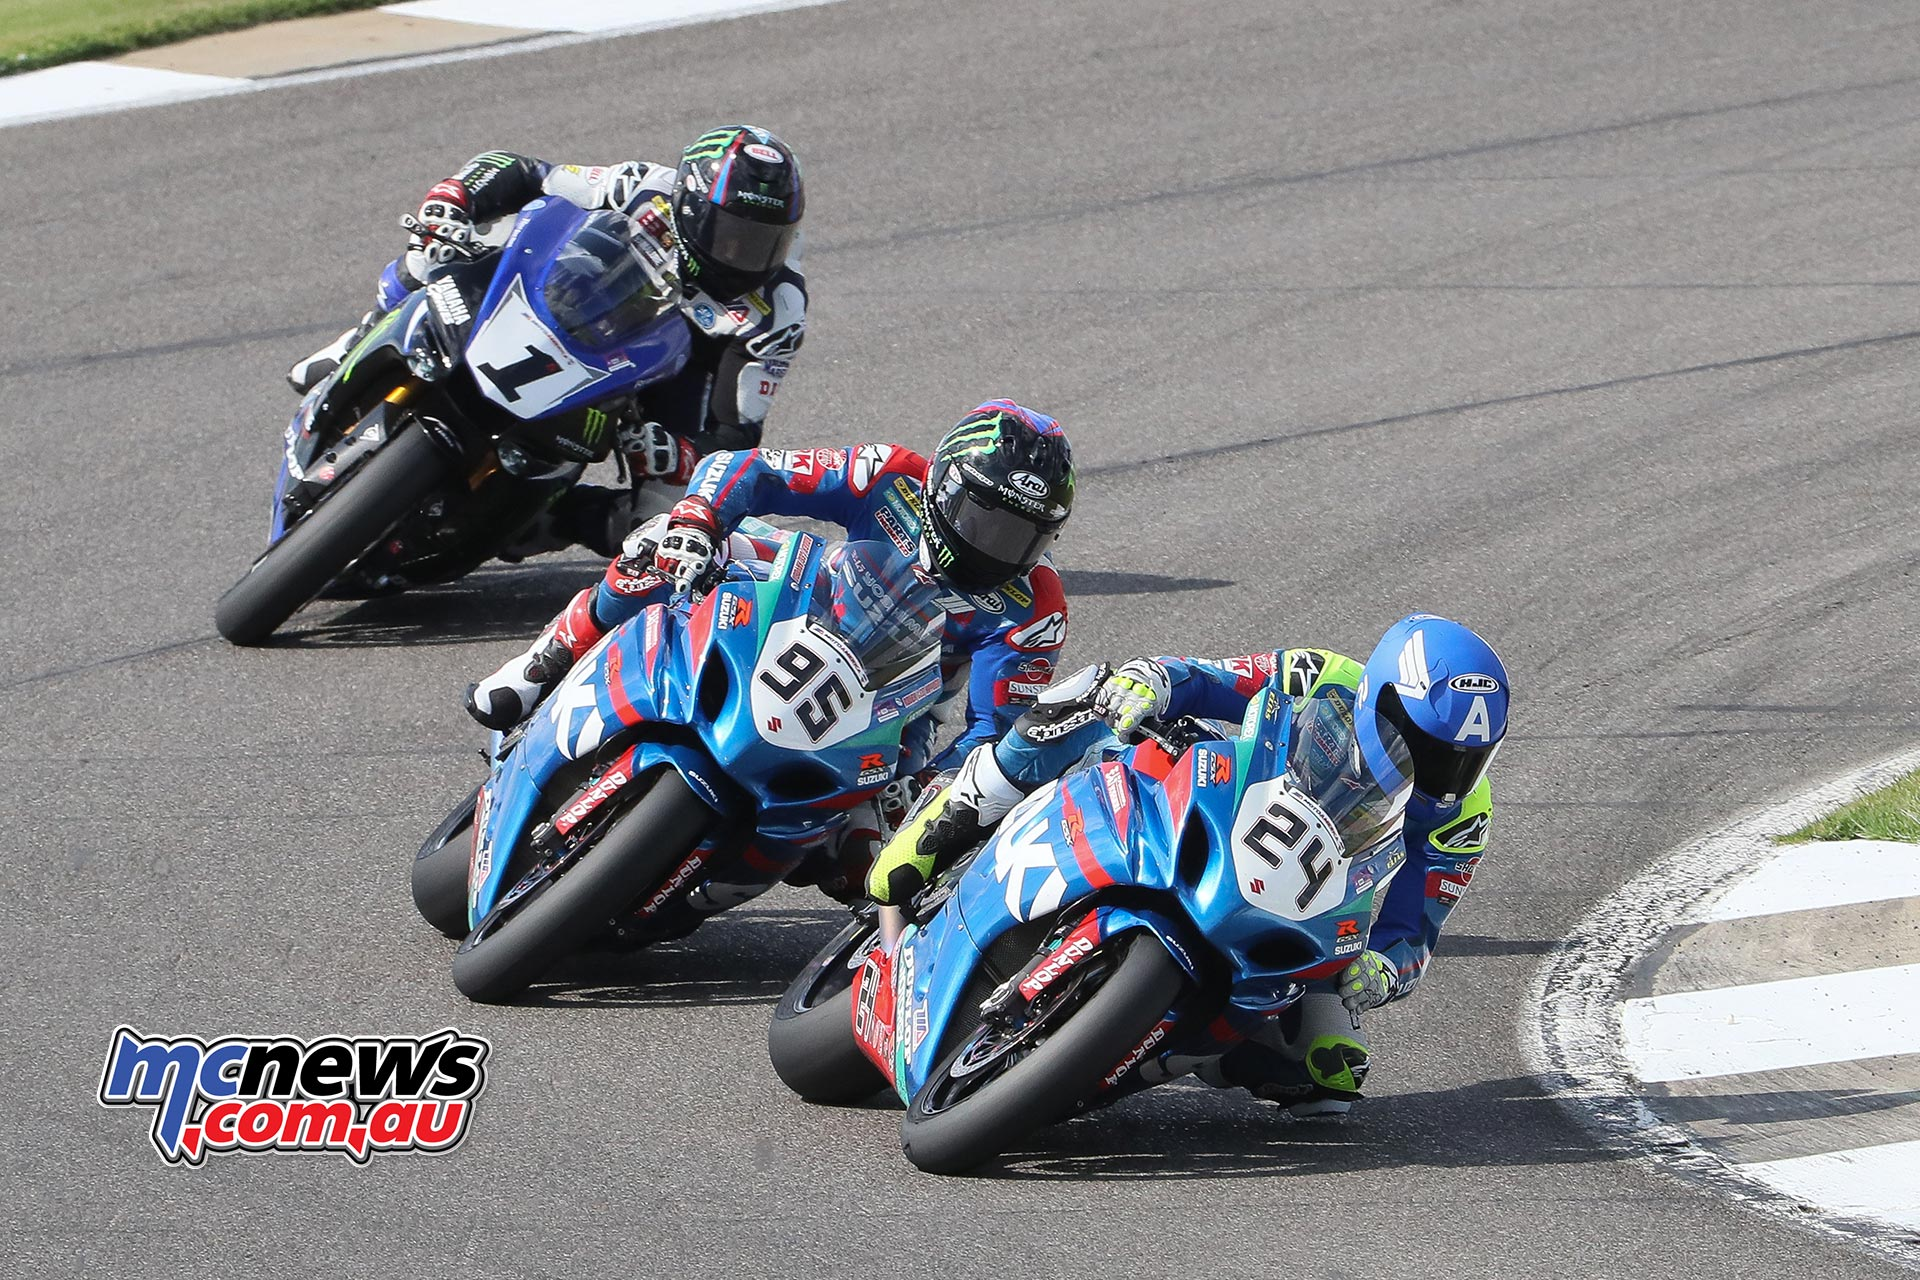 Toni Elias (24) and his Yoshimura Suzuki teammate Roger Hayden (95) split MotoAmerica Superbike wins on Sunday at Barber Motorsports Park. Series points leader Cameron Beaubier (1) finished third in both races. Photography by Brian J. Nelson.